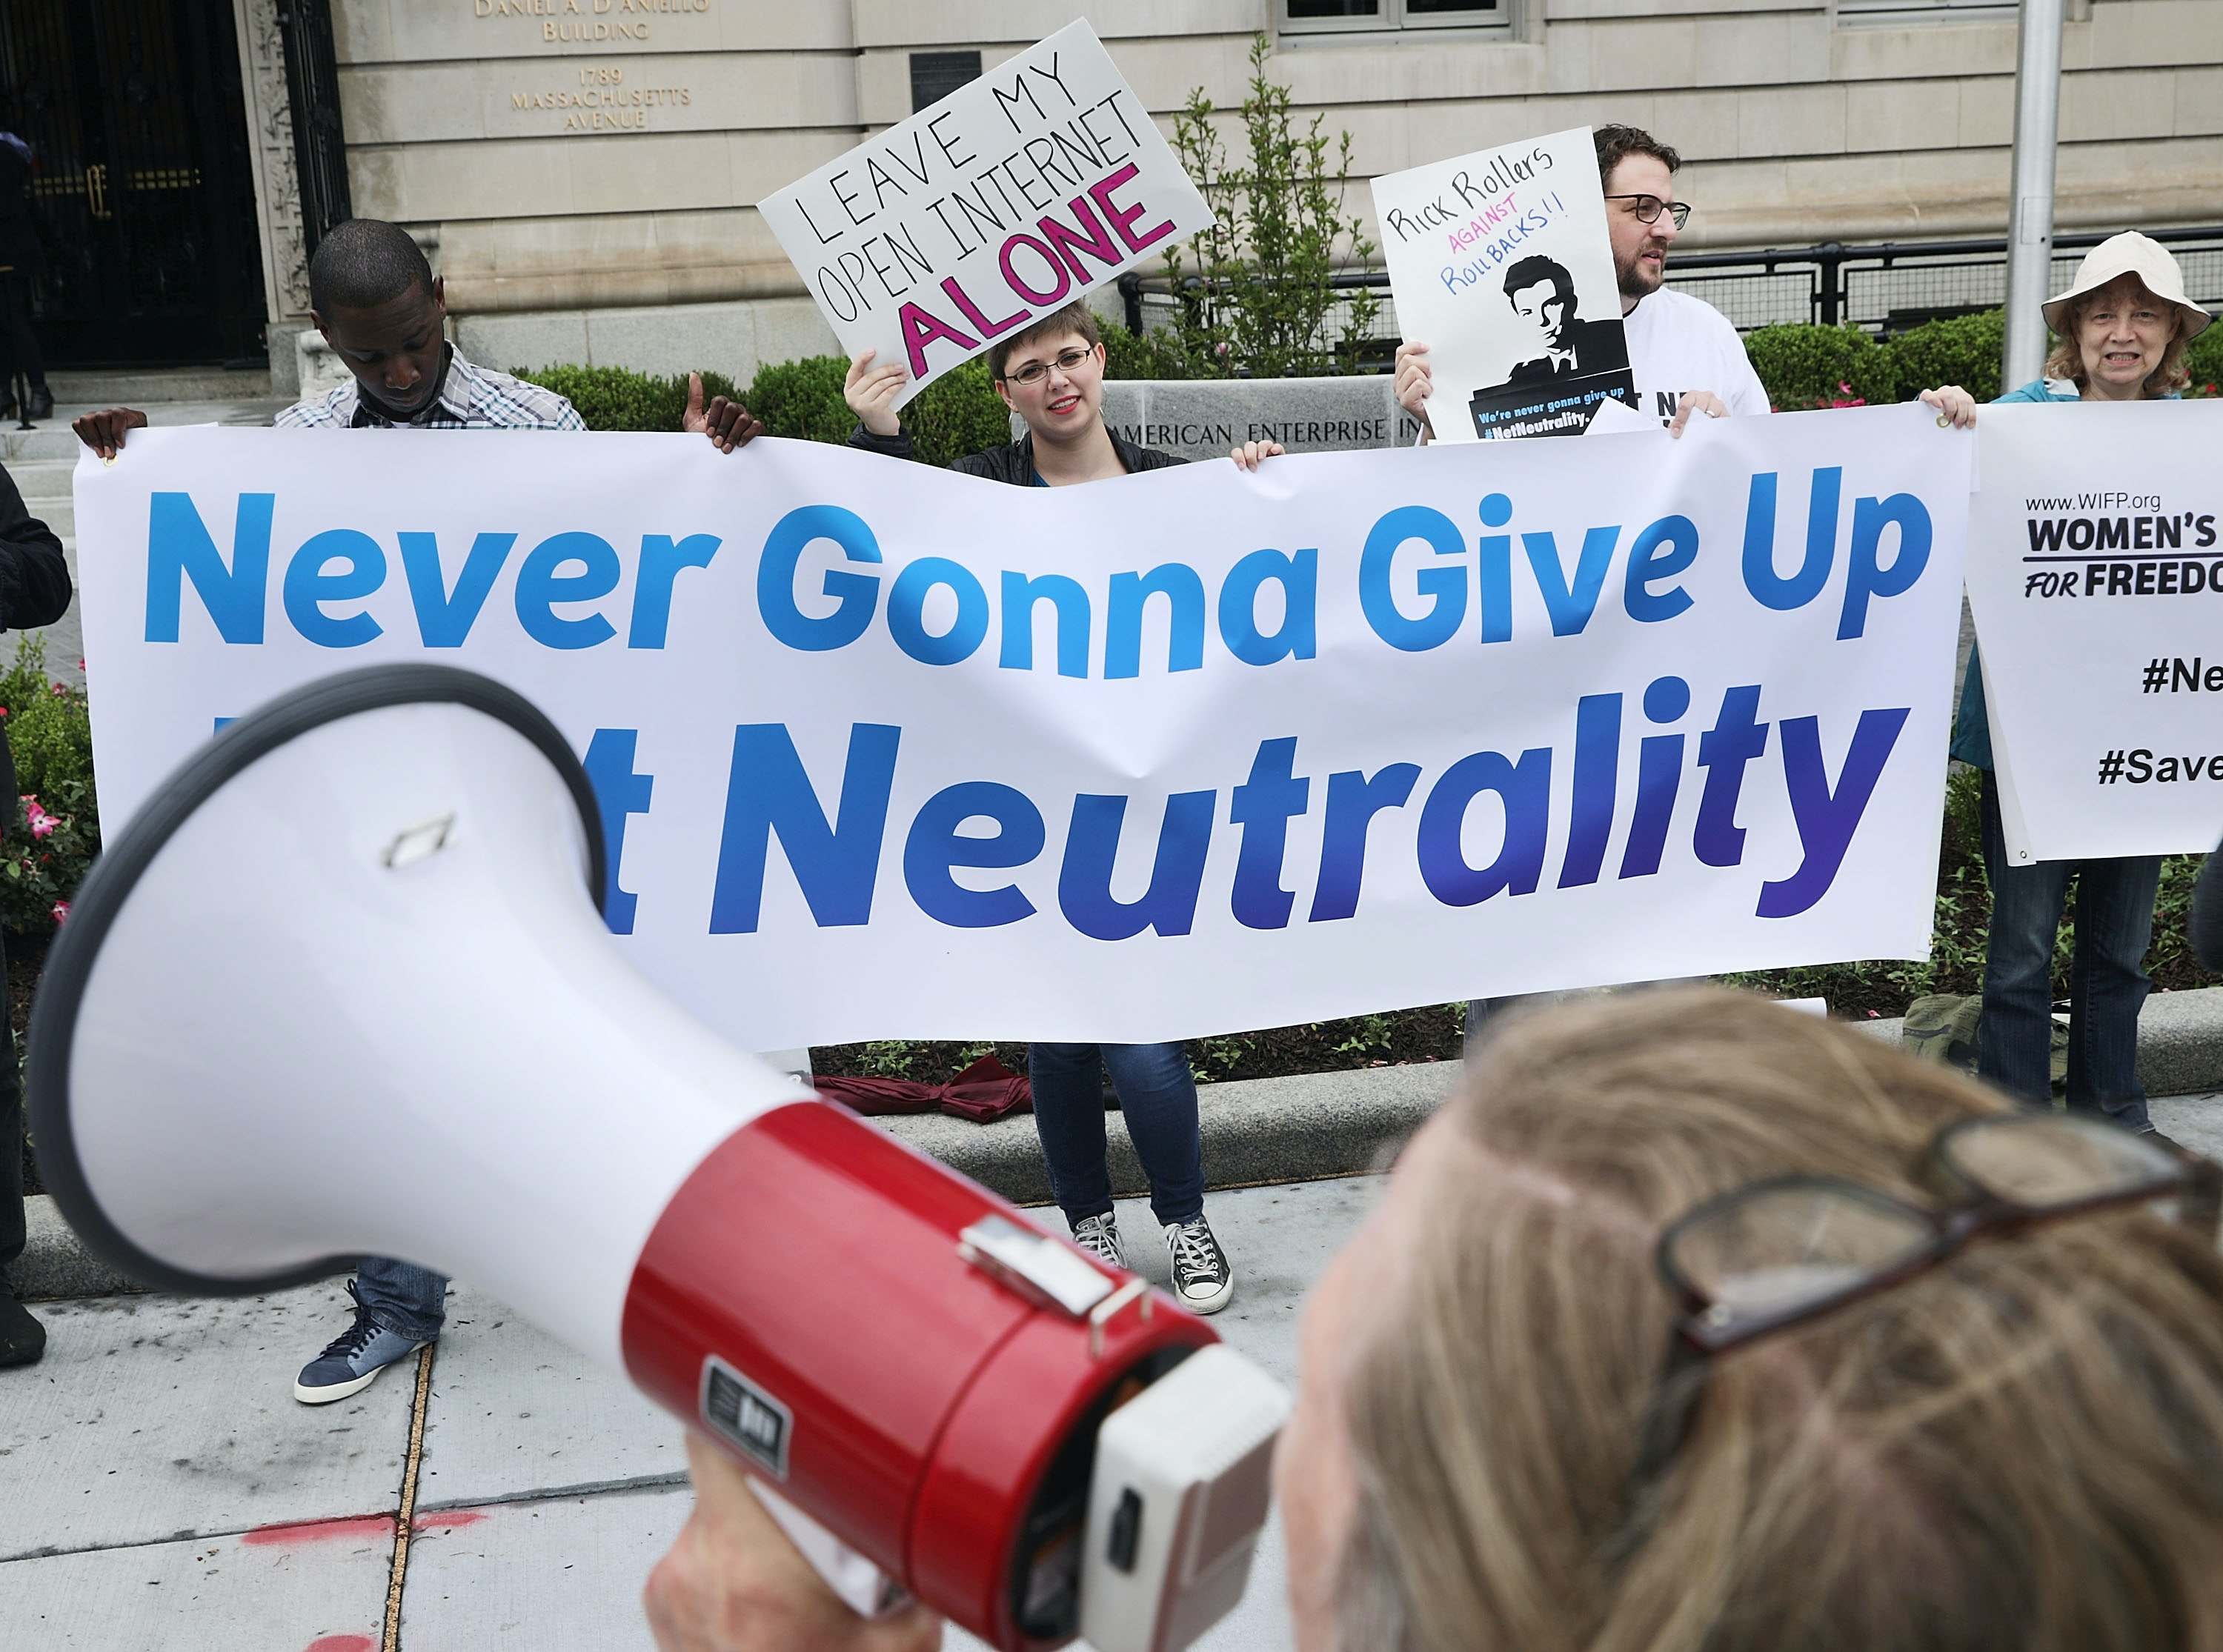 Protesters rally against net neutrality regulation rollback